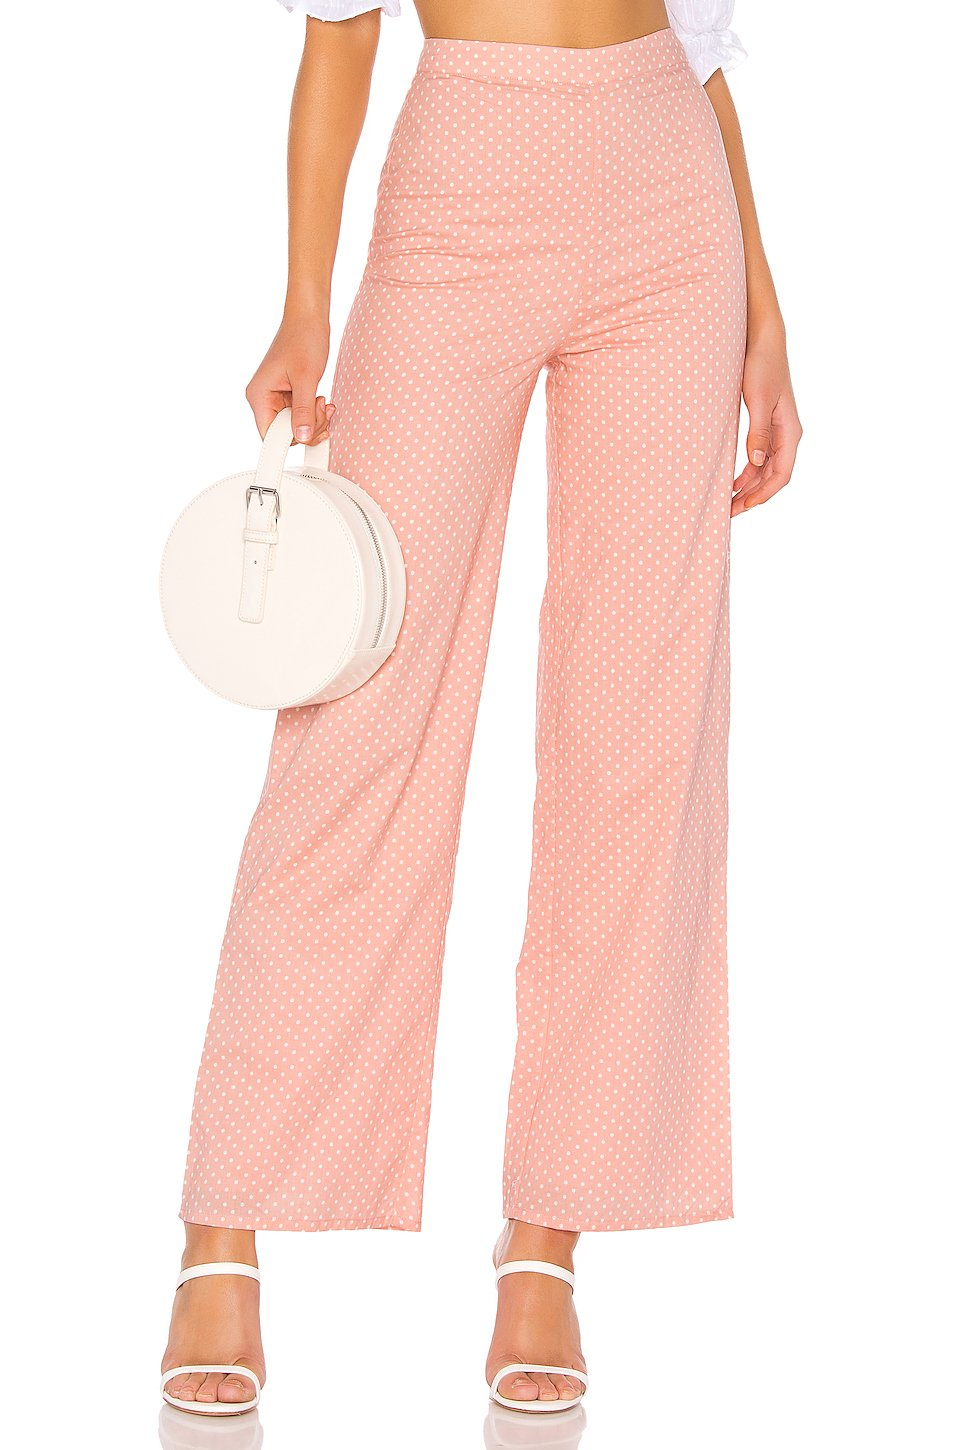 Brandy Pants in Pink Dot